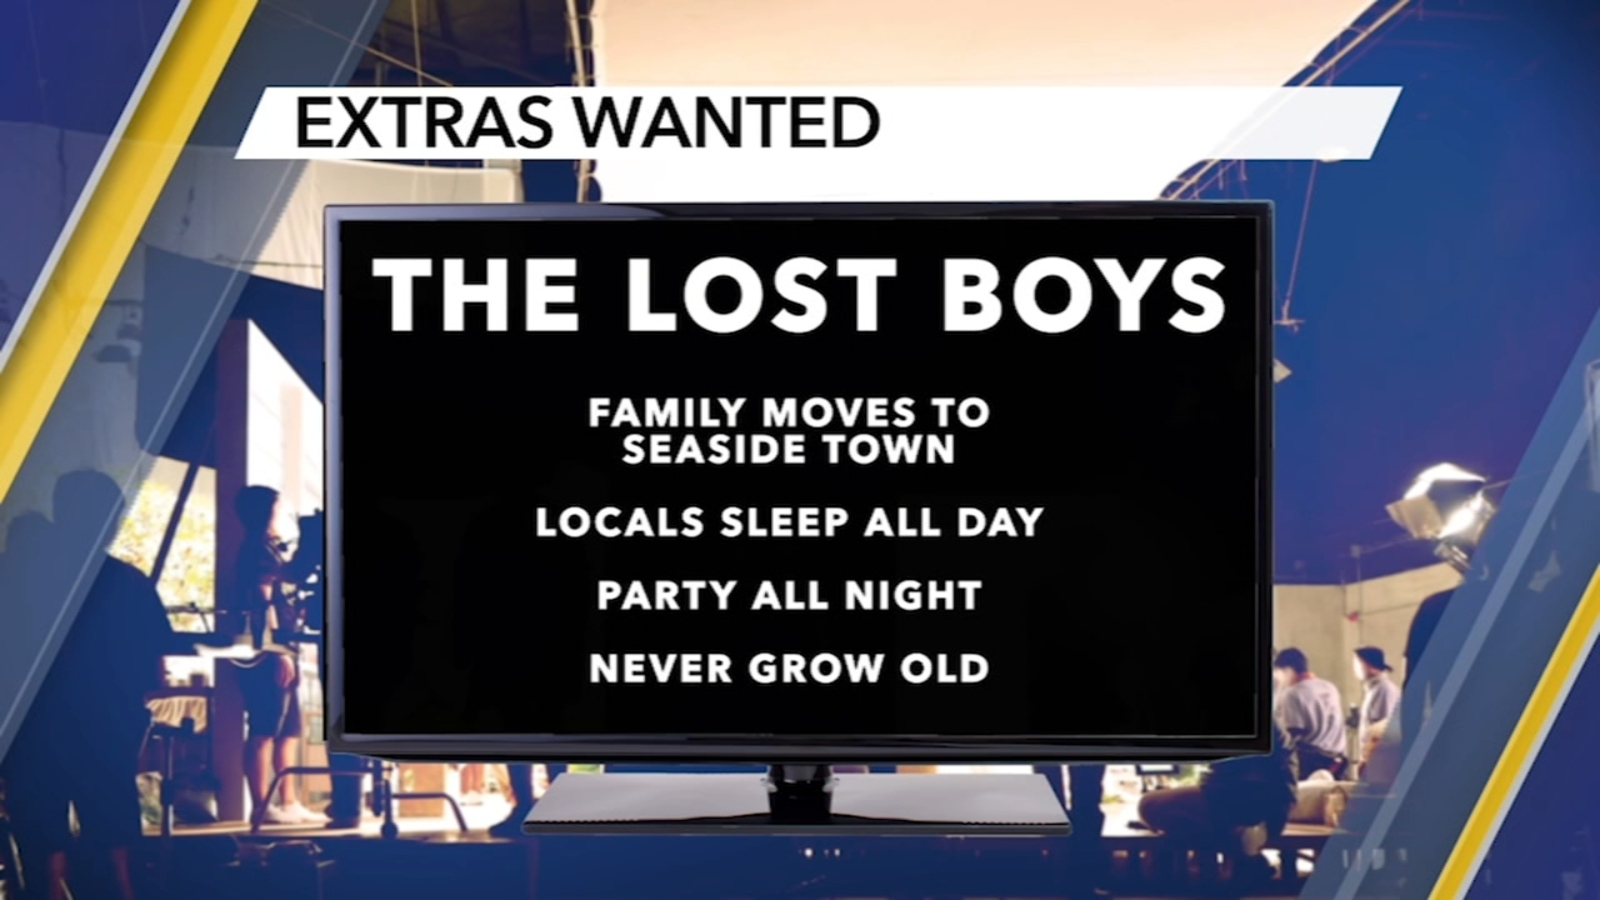 CW series 'The Lost Boys' casting paid extras in North Carolina 1